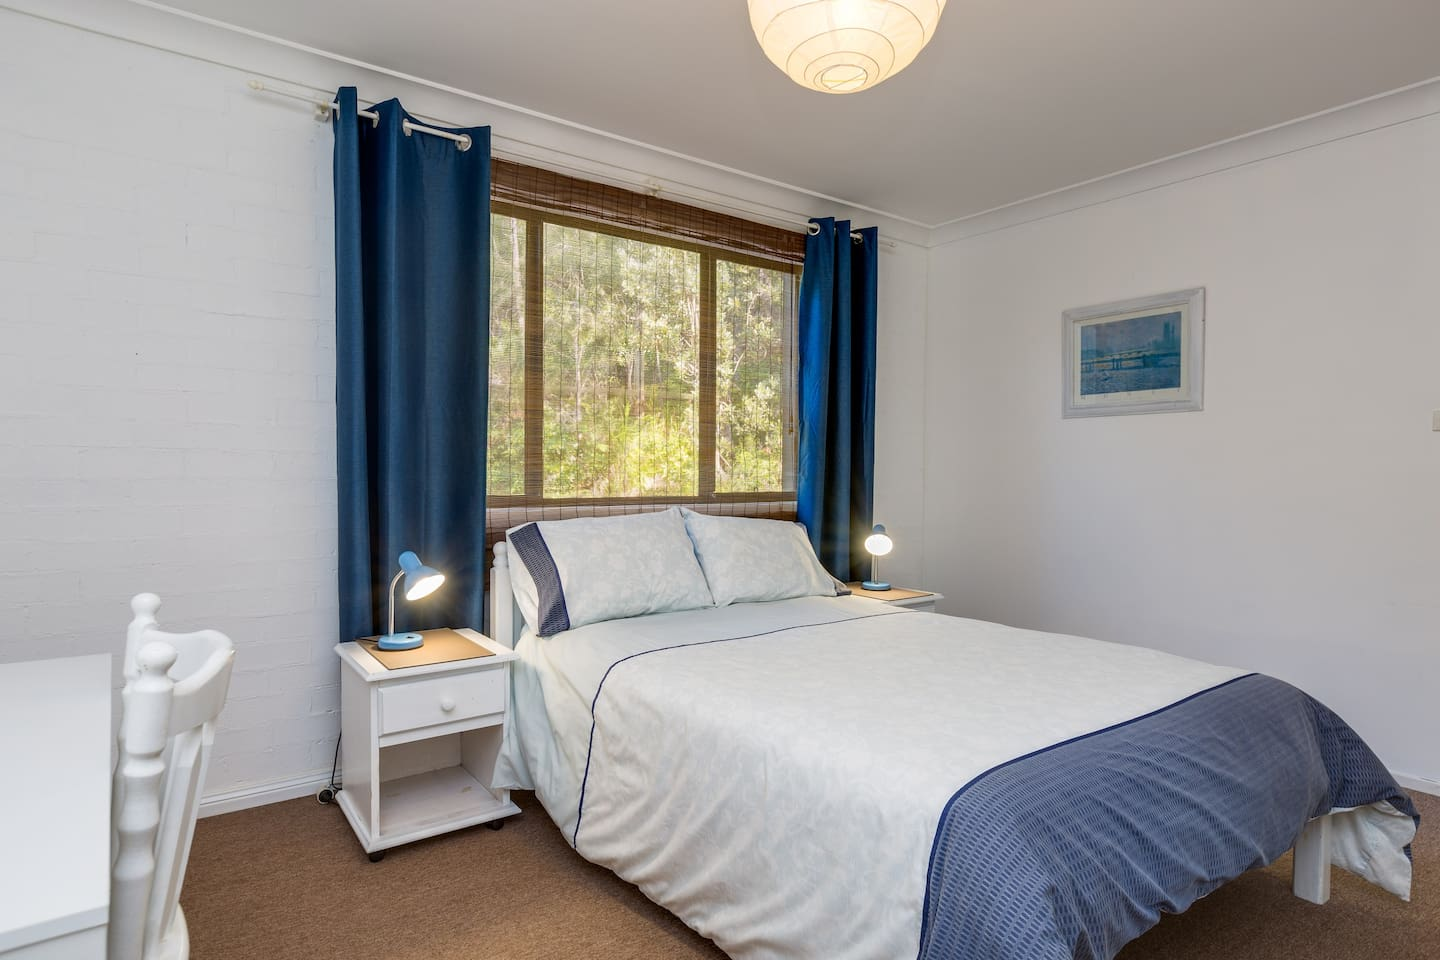 Bedroom 2 Double Bed For singles/couples the double bedroom is closed off for a more intimate and comfy feel.